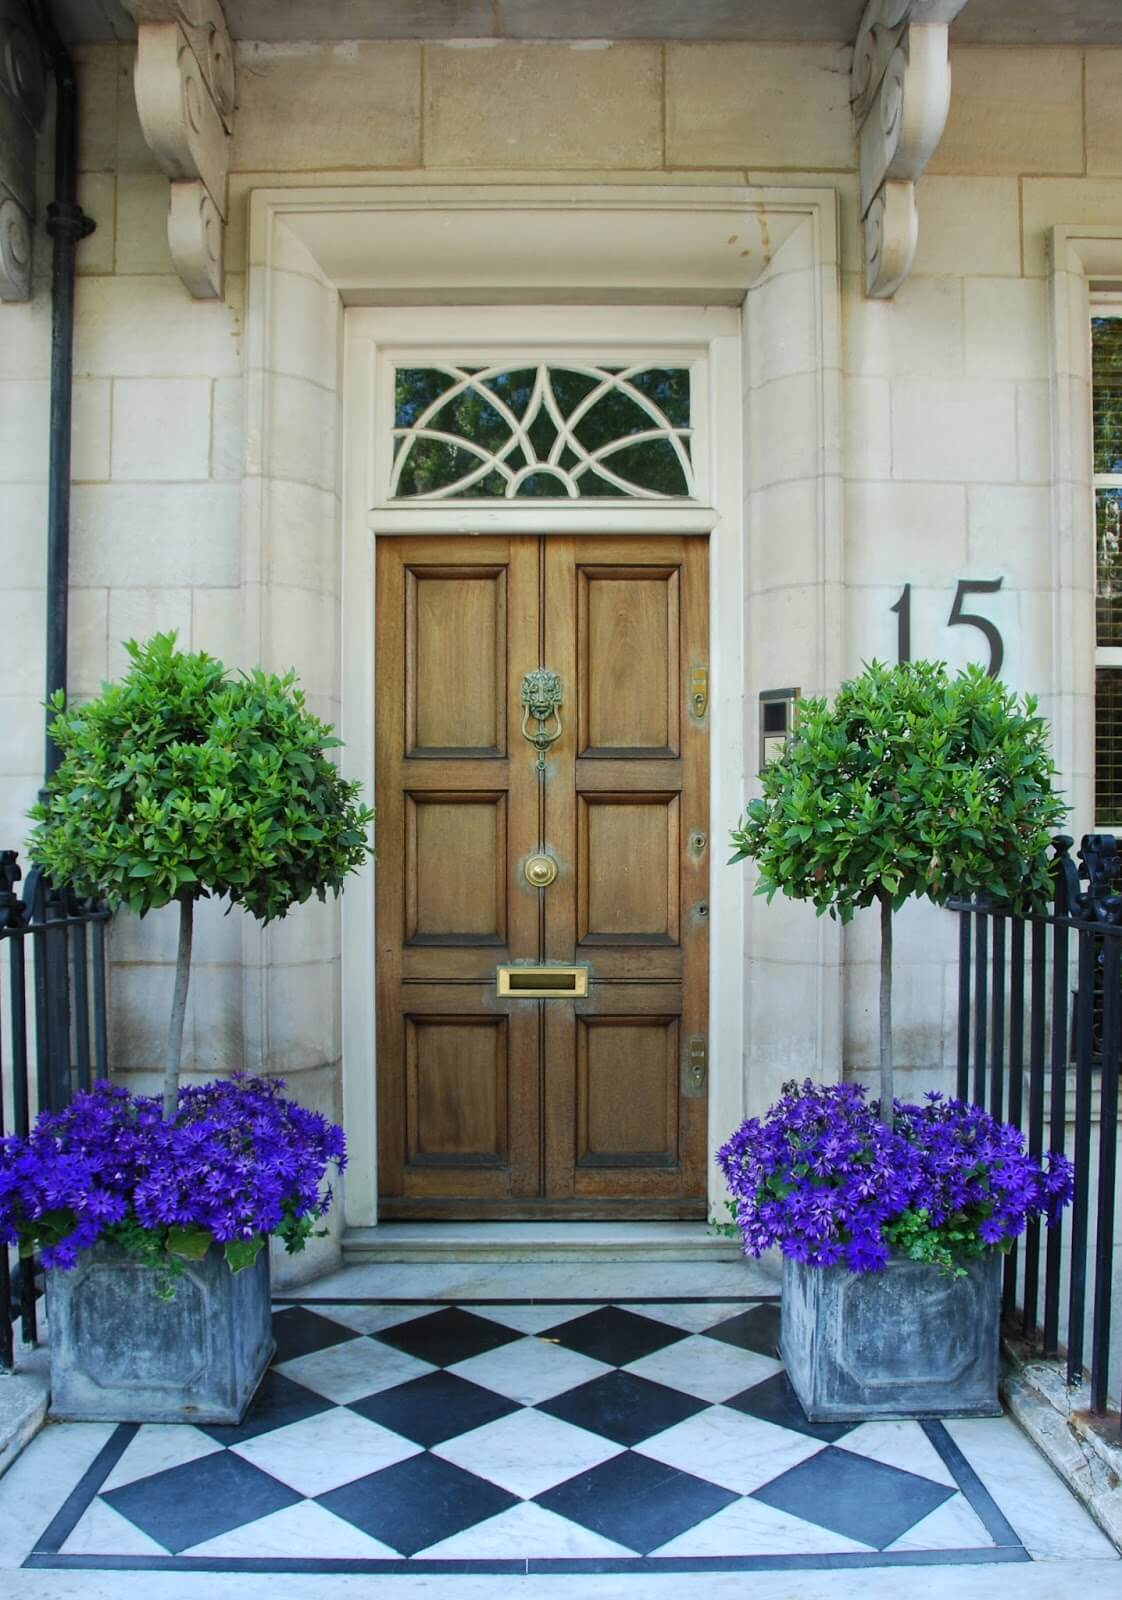 Chic Flower and Tree Porch Pots